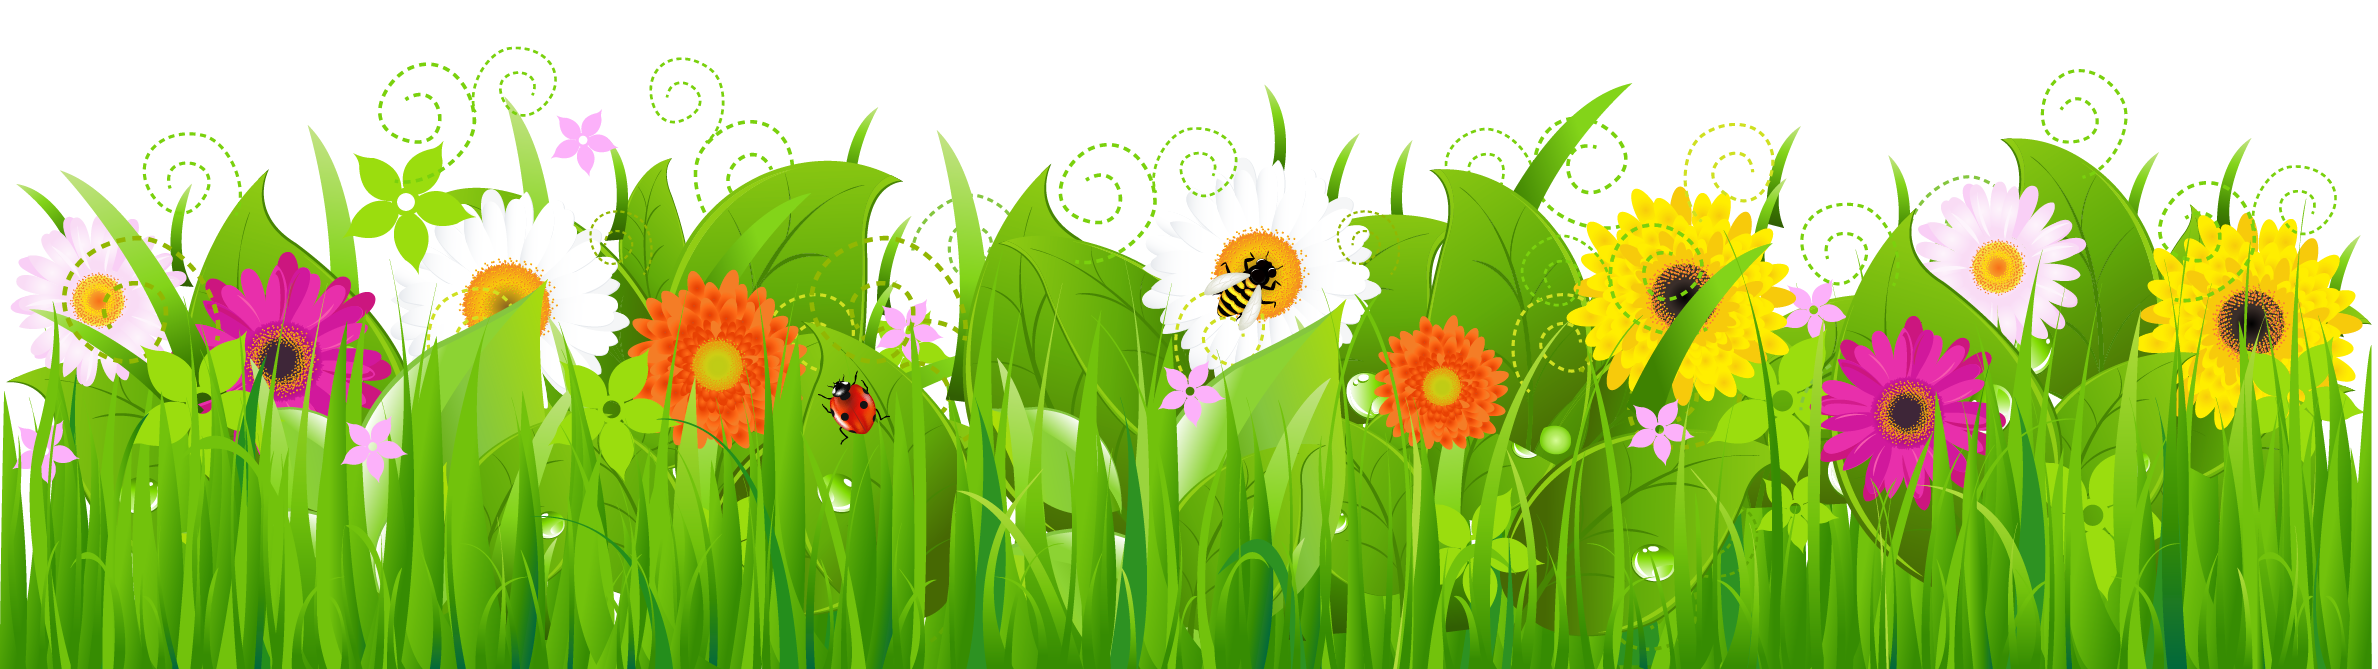 Grass with flowers and. Clipart roses natural